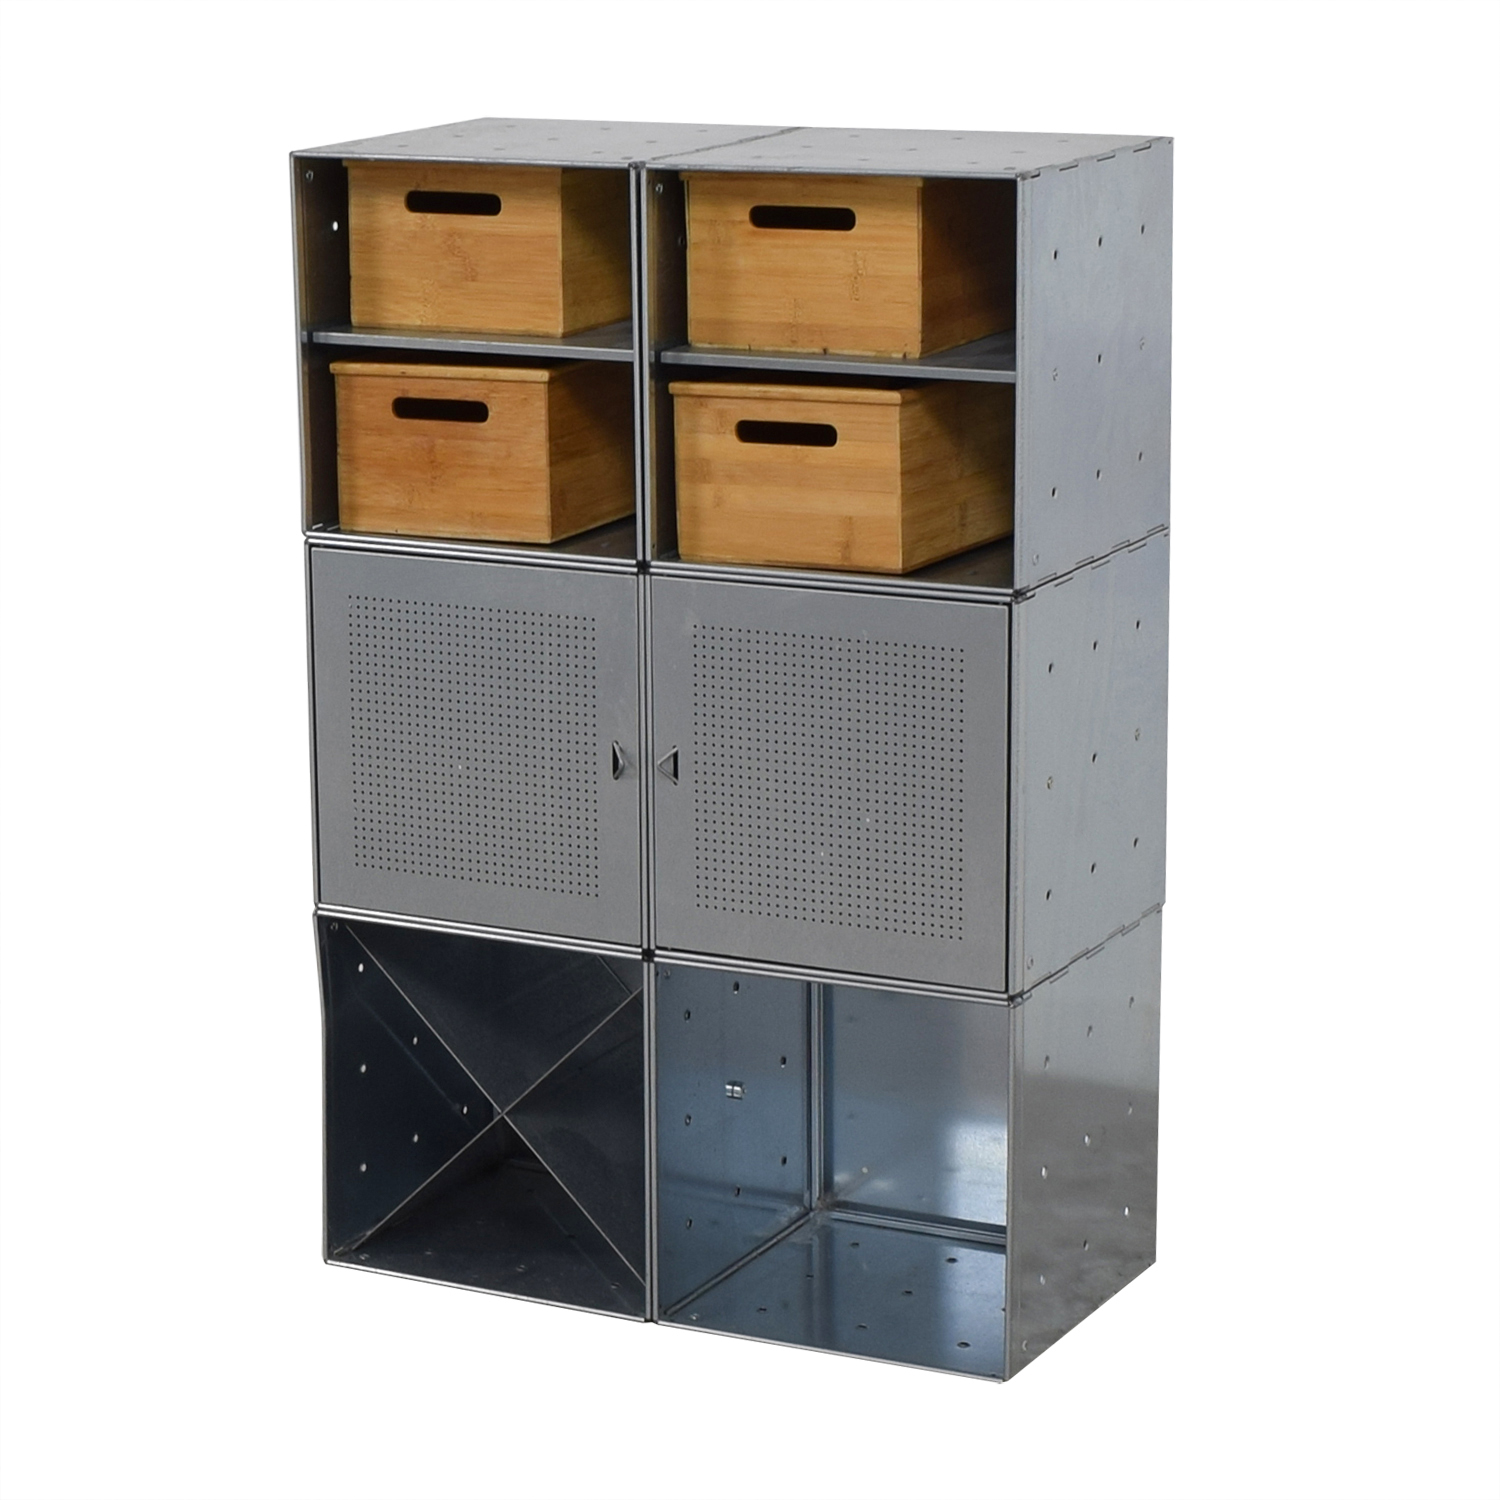 ... Container Store Container Store Metal And Wood Storage Console Storage  ...